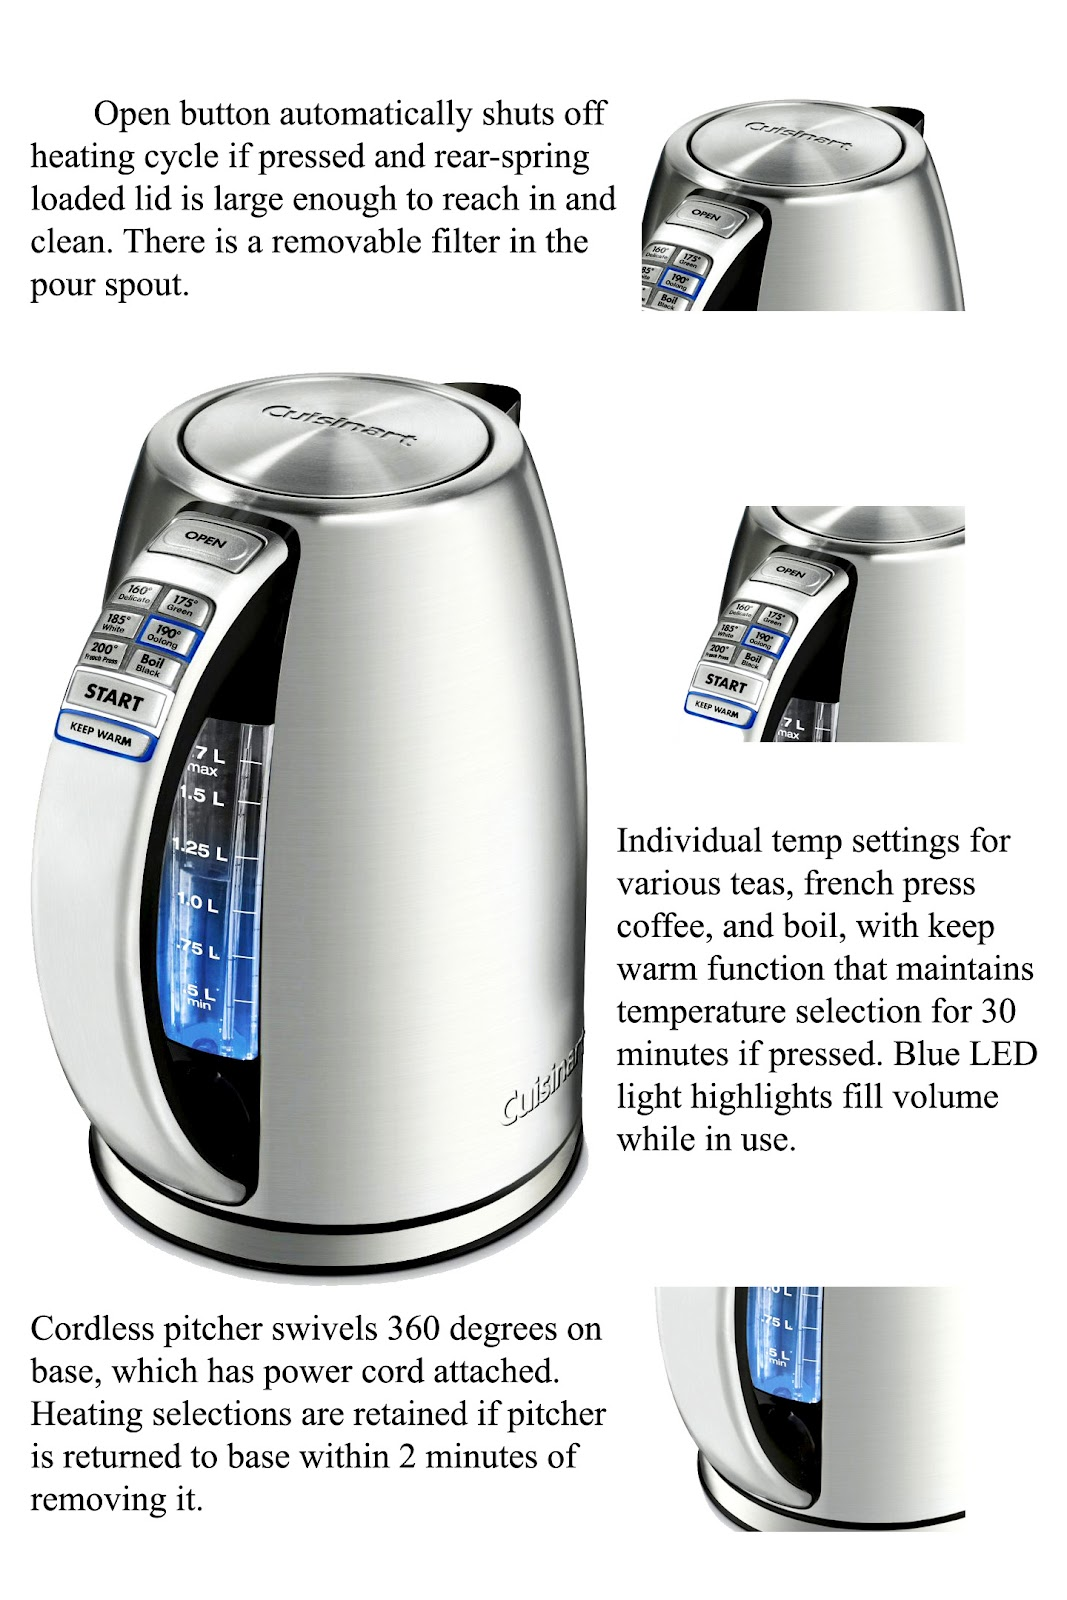 Coffee maker and Appliance